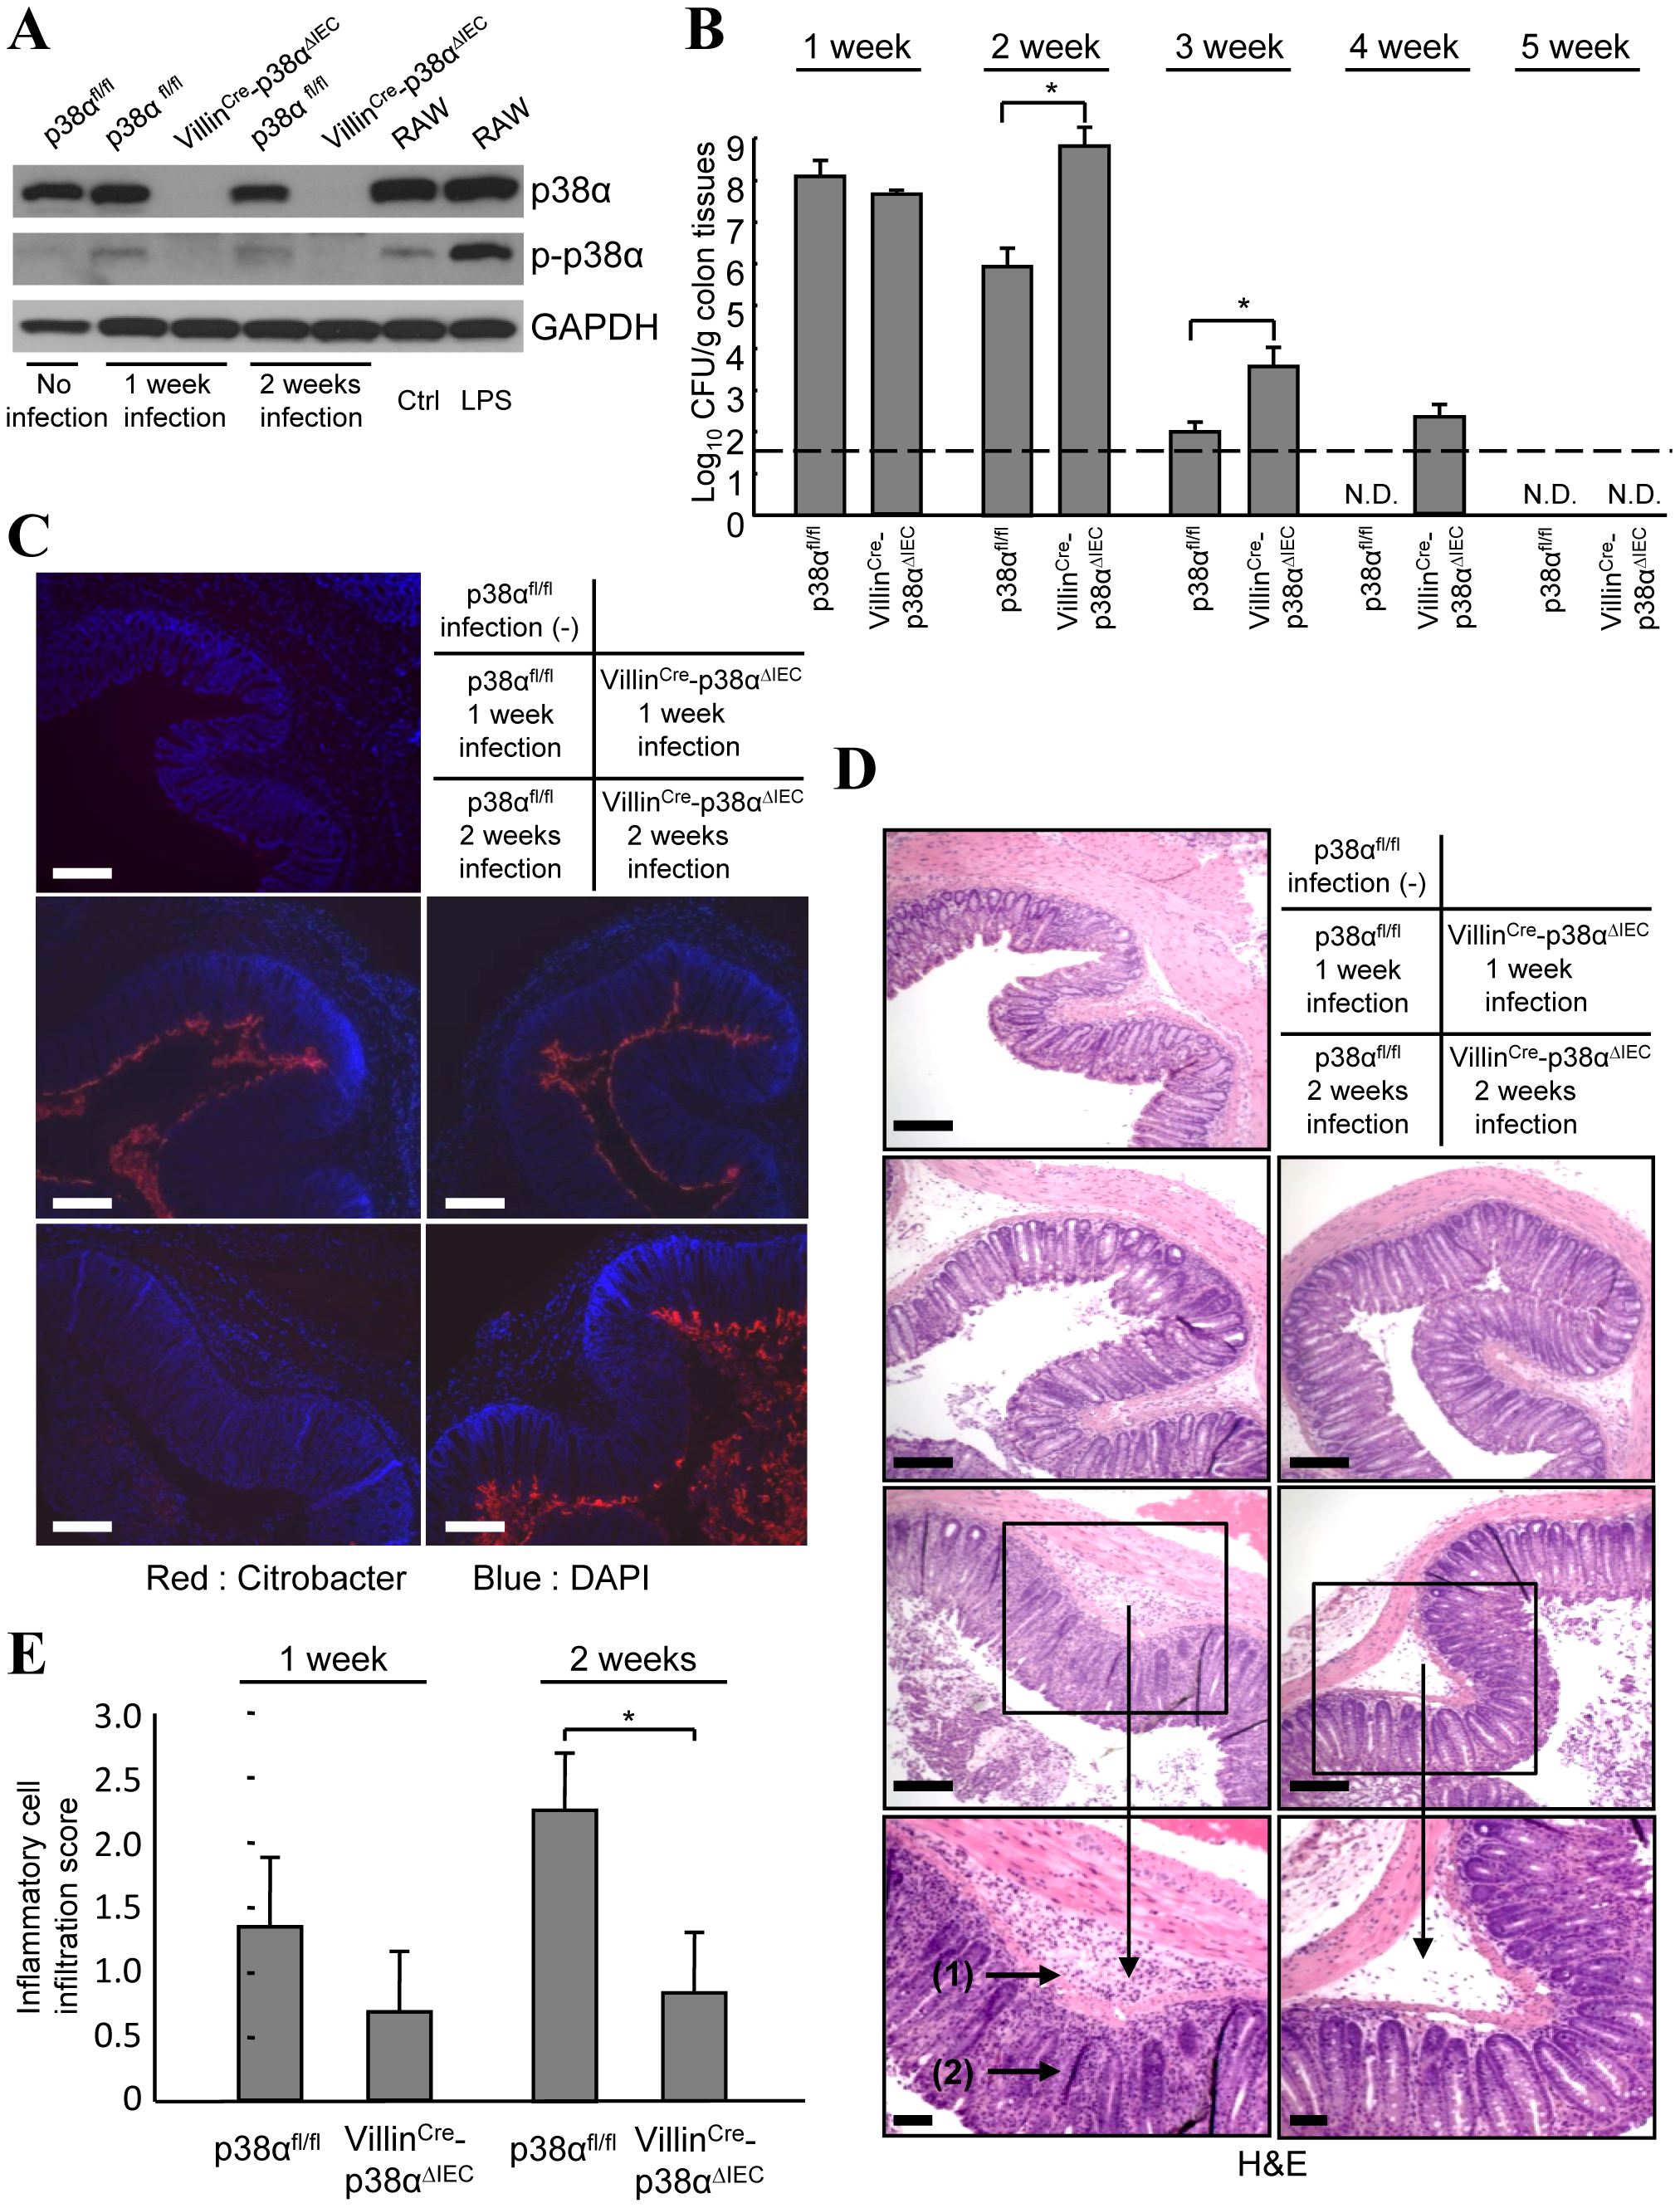 p38α in intestinal epithelial cells is required for the immunity to <i>C. rodentium</i>.